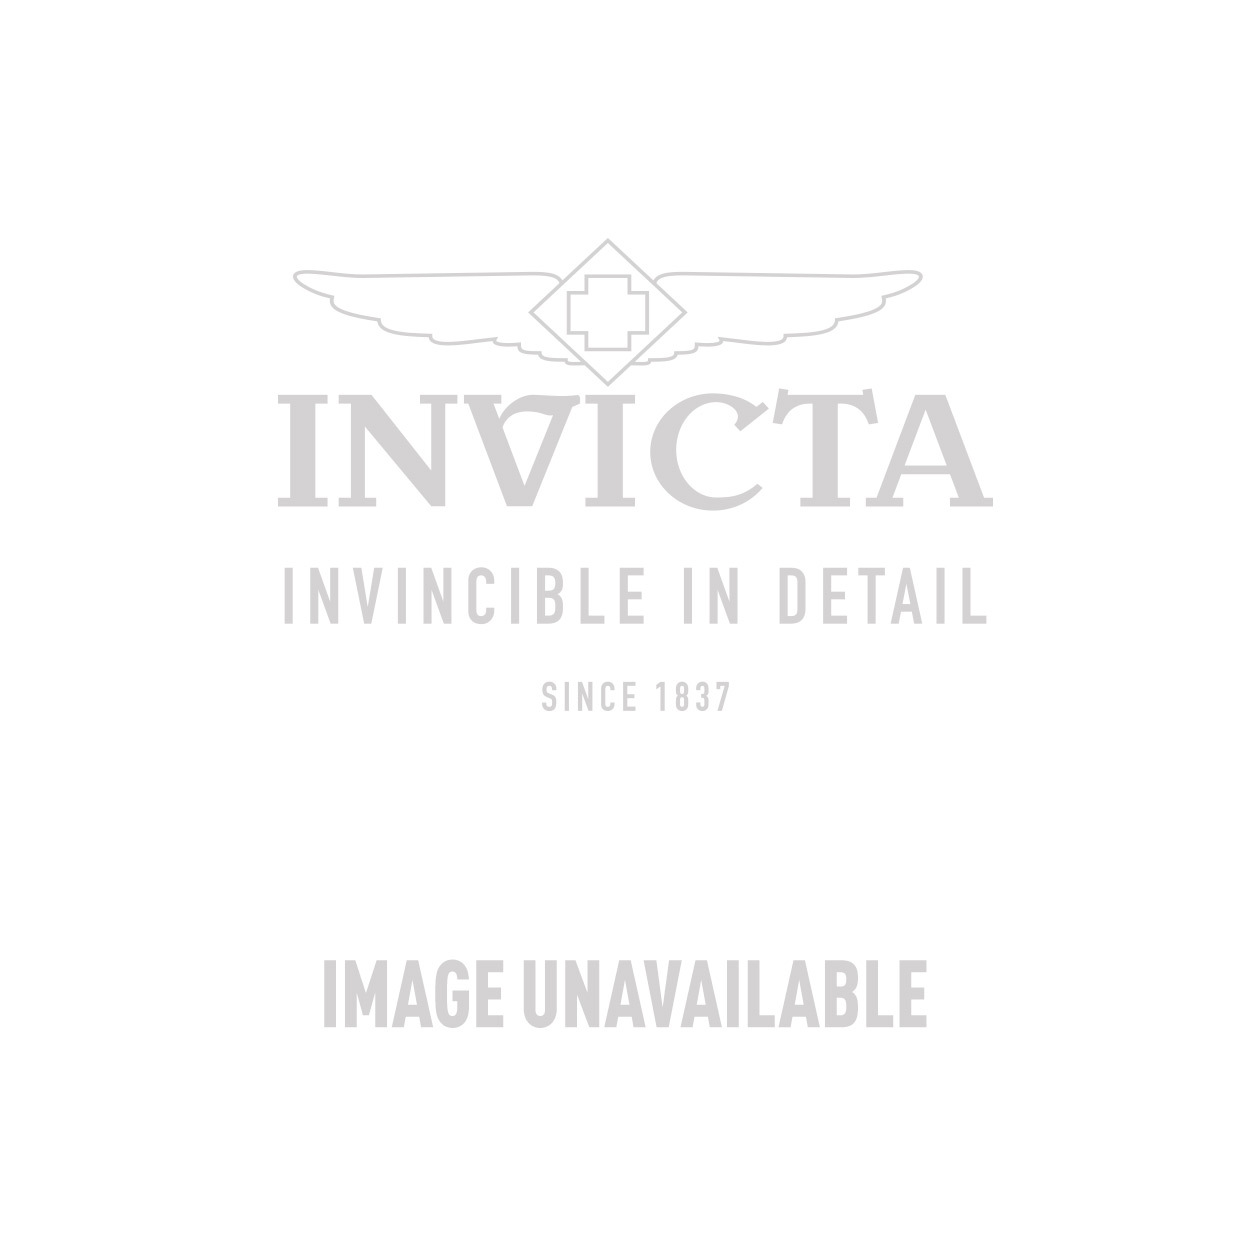 invicta bolt thunderbolt automatic watch black stainless steel